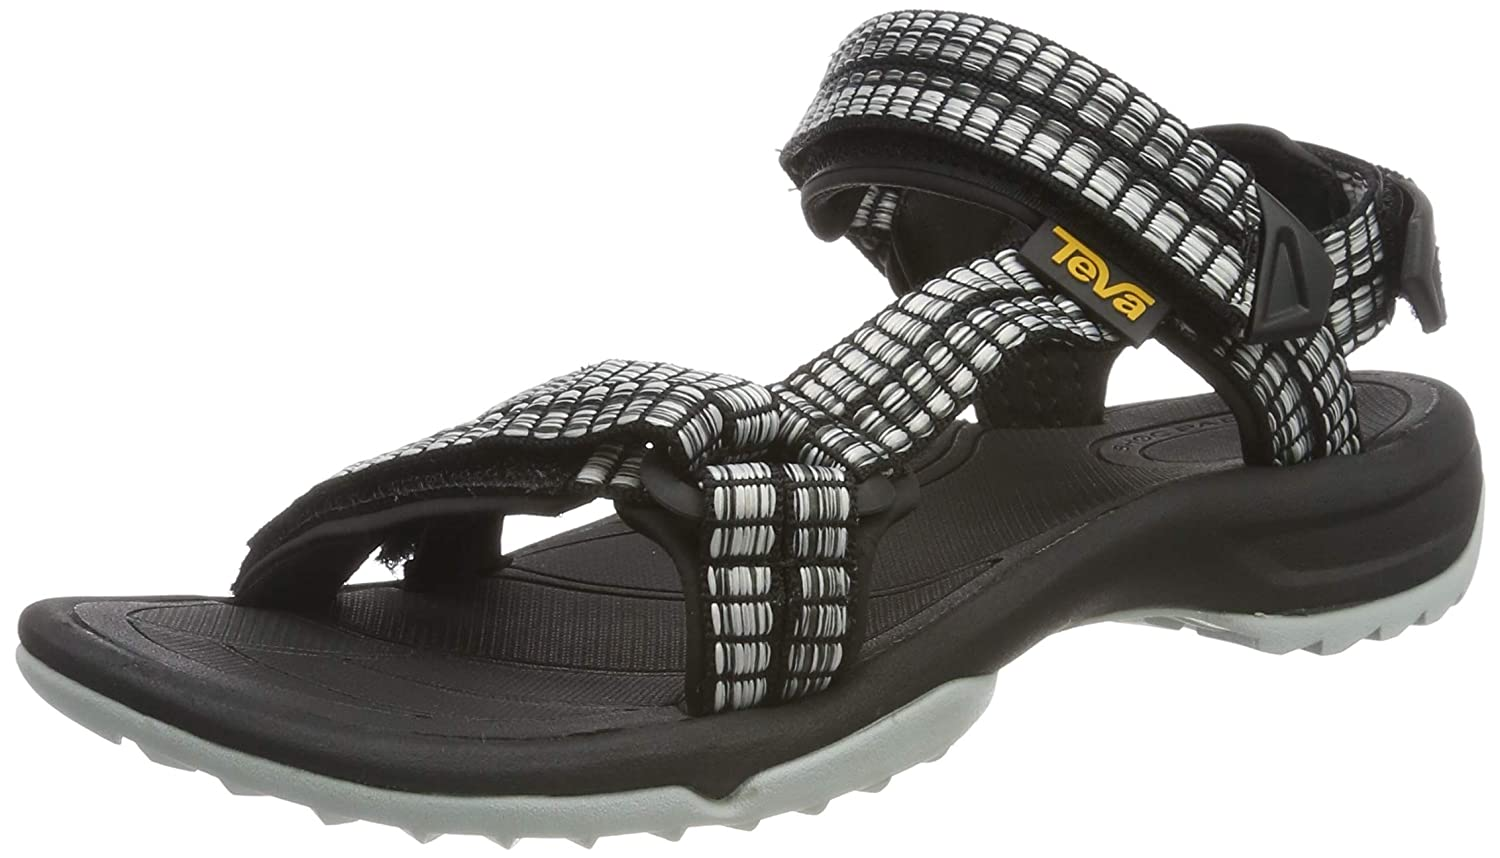 00baeecfa5ae Teva Women s Terra FI Lite Sandal  Teva  Amazon.ca  Sports   Outdoors